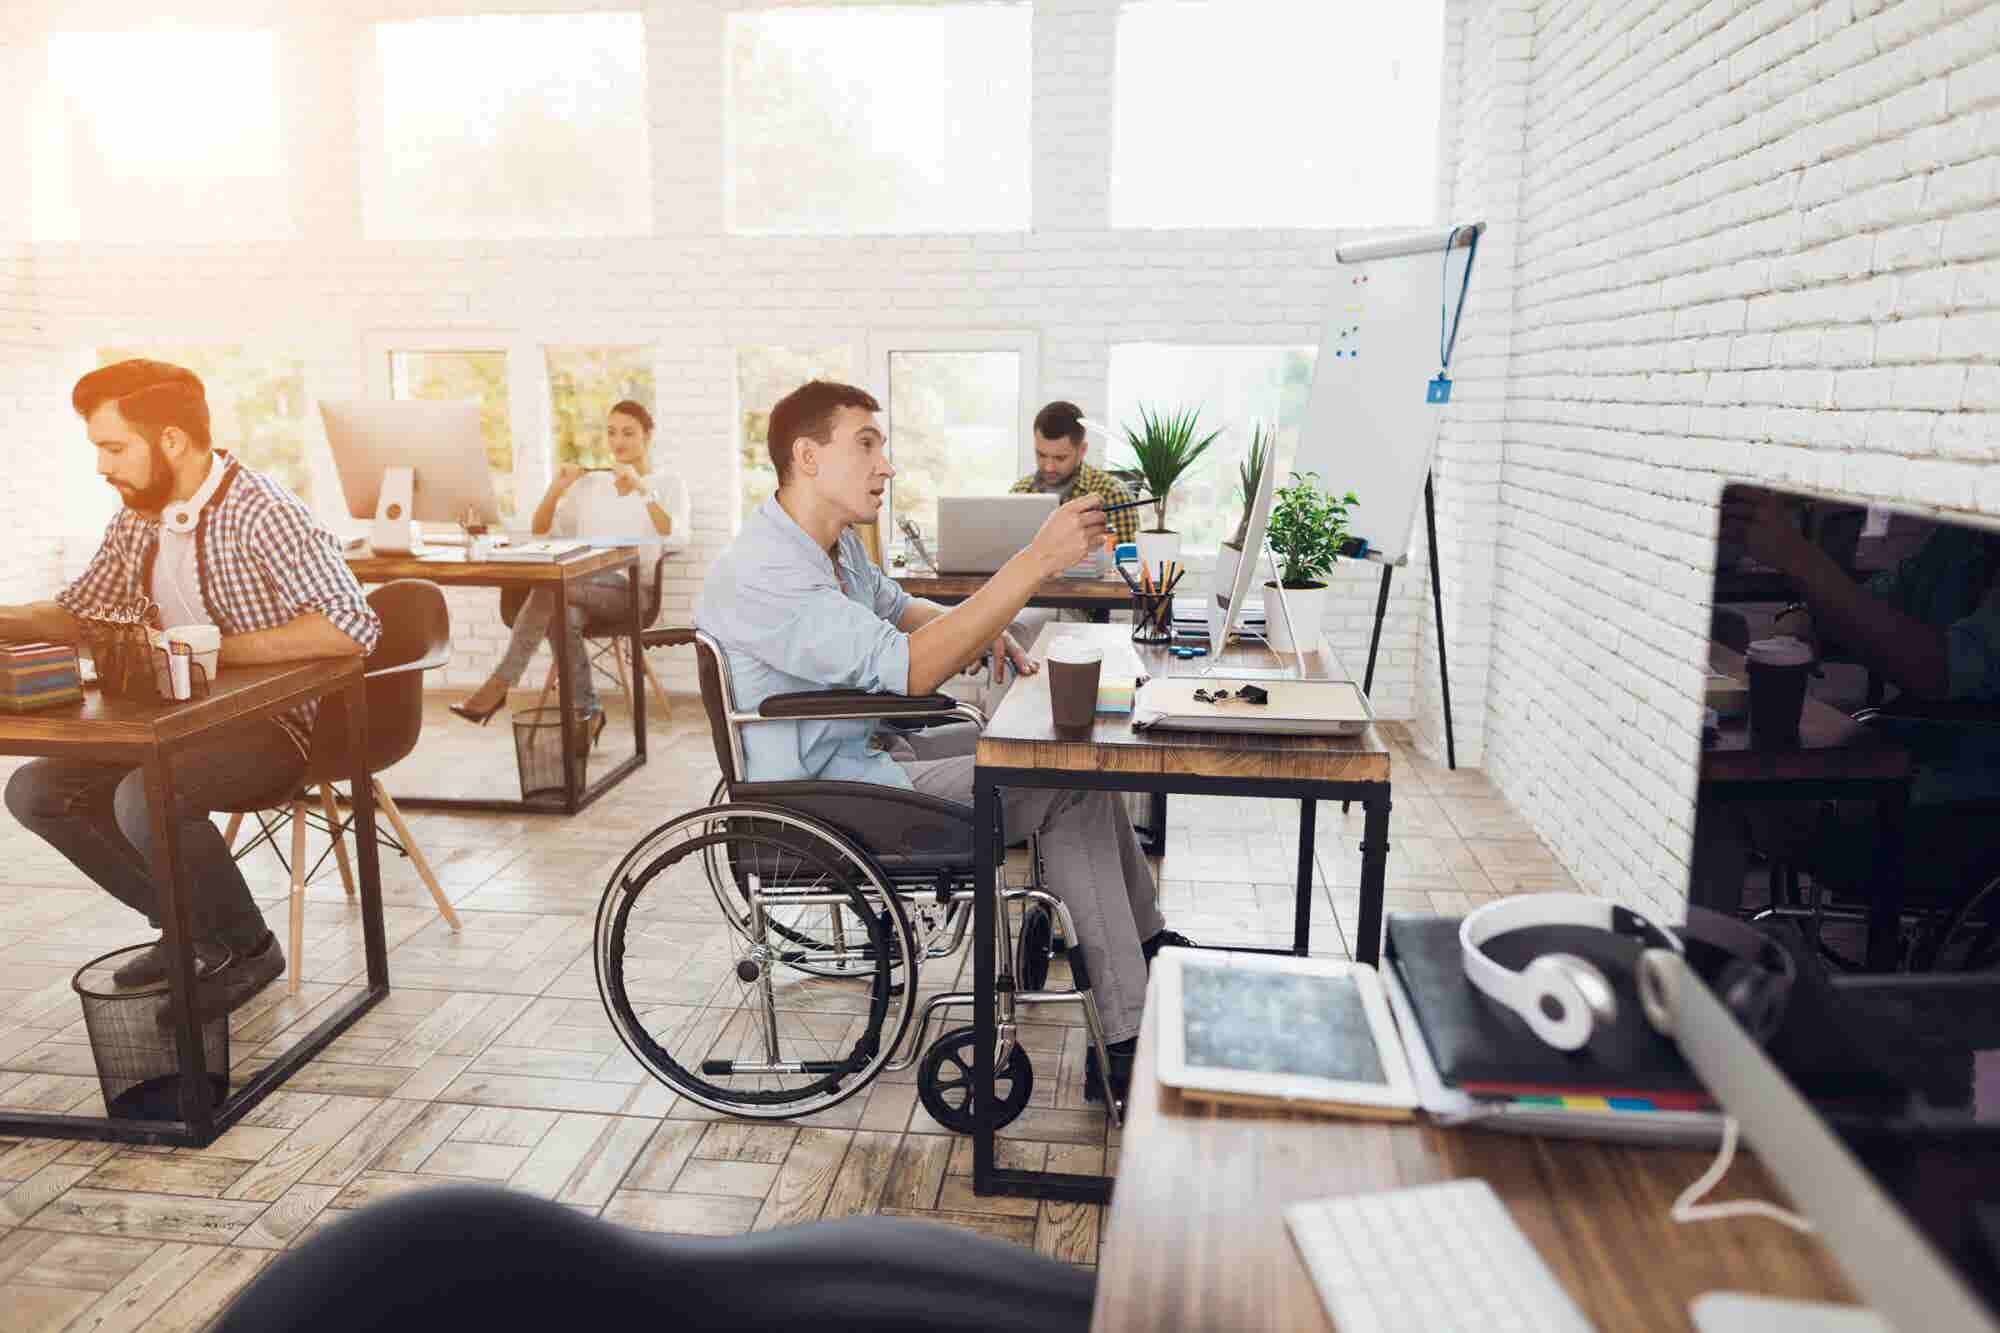 Employing Individuals with Disabilities May Solve Your Talent Crisis